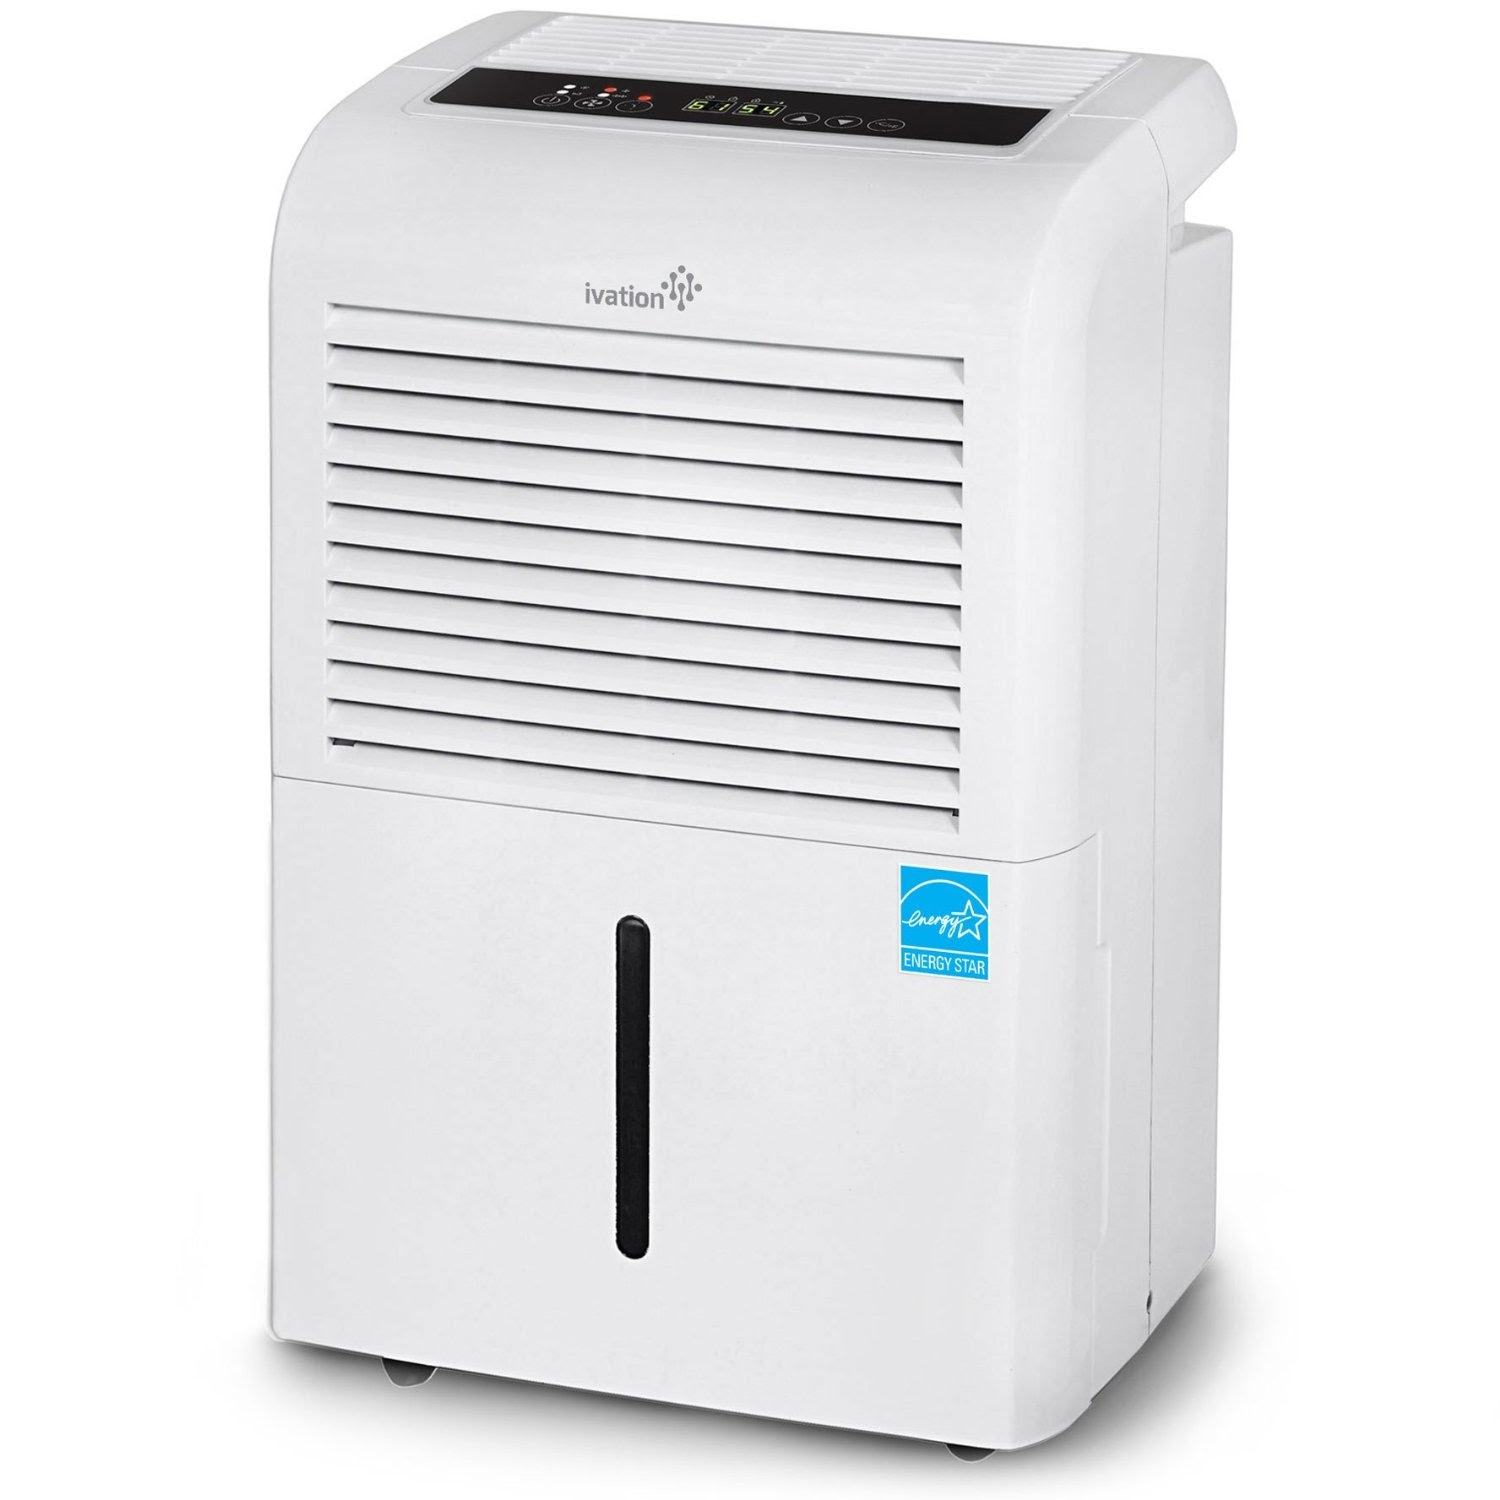 Ivation IVADH70PW 70 Pint Energy Star Dehumidifier. >>